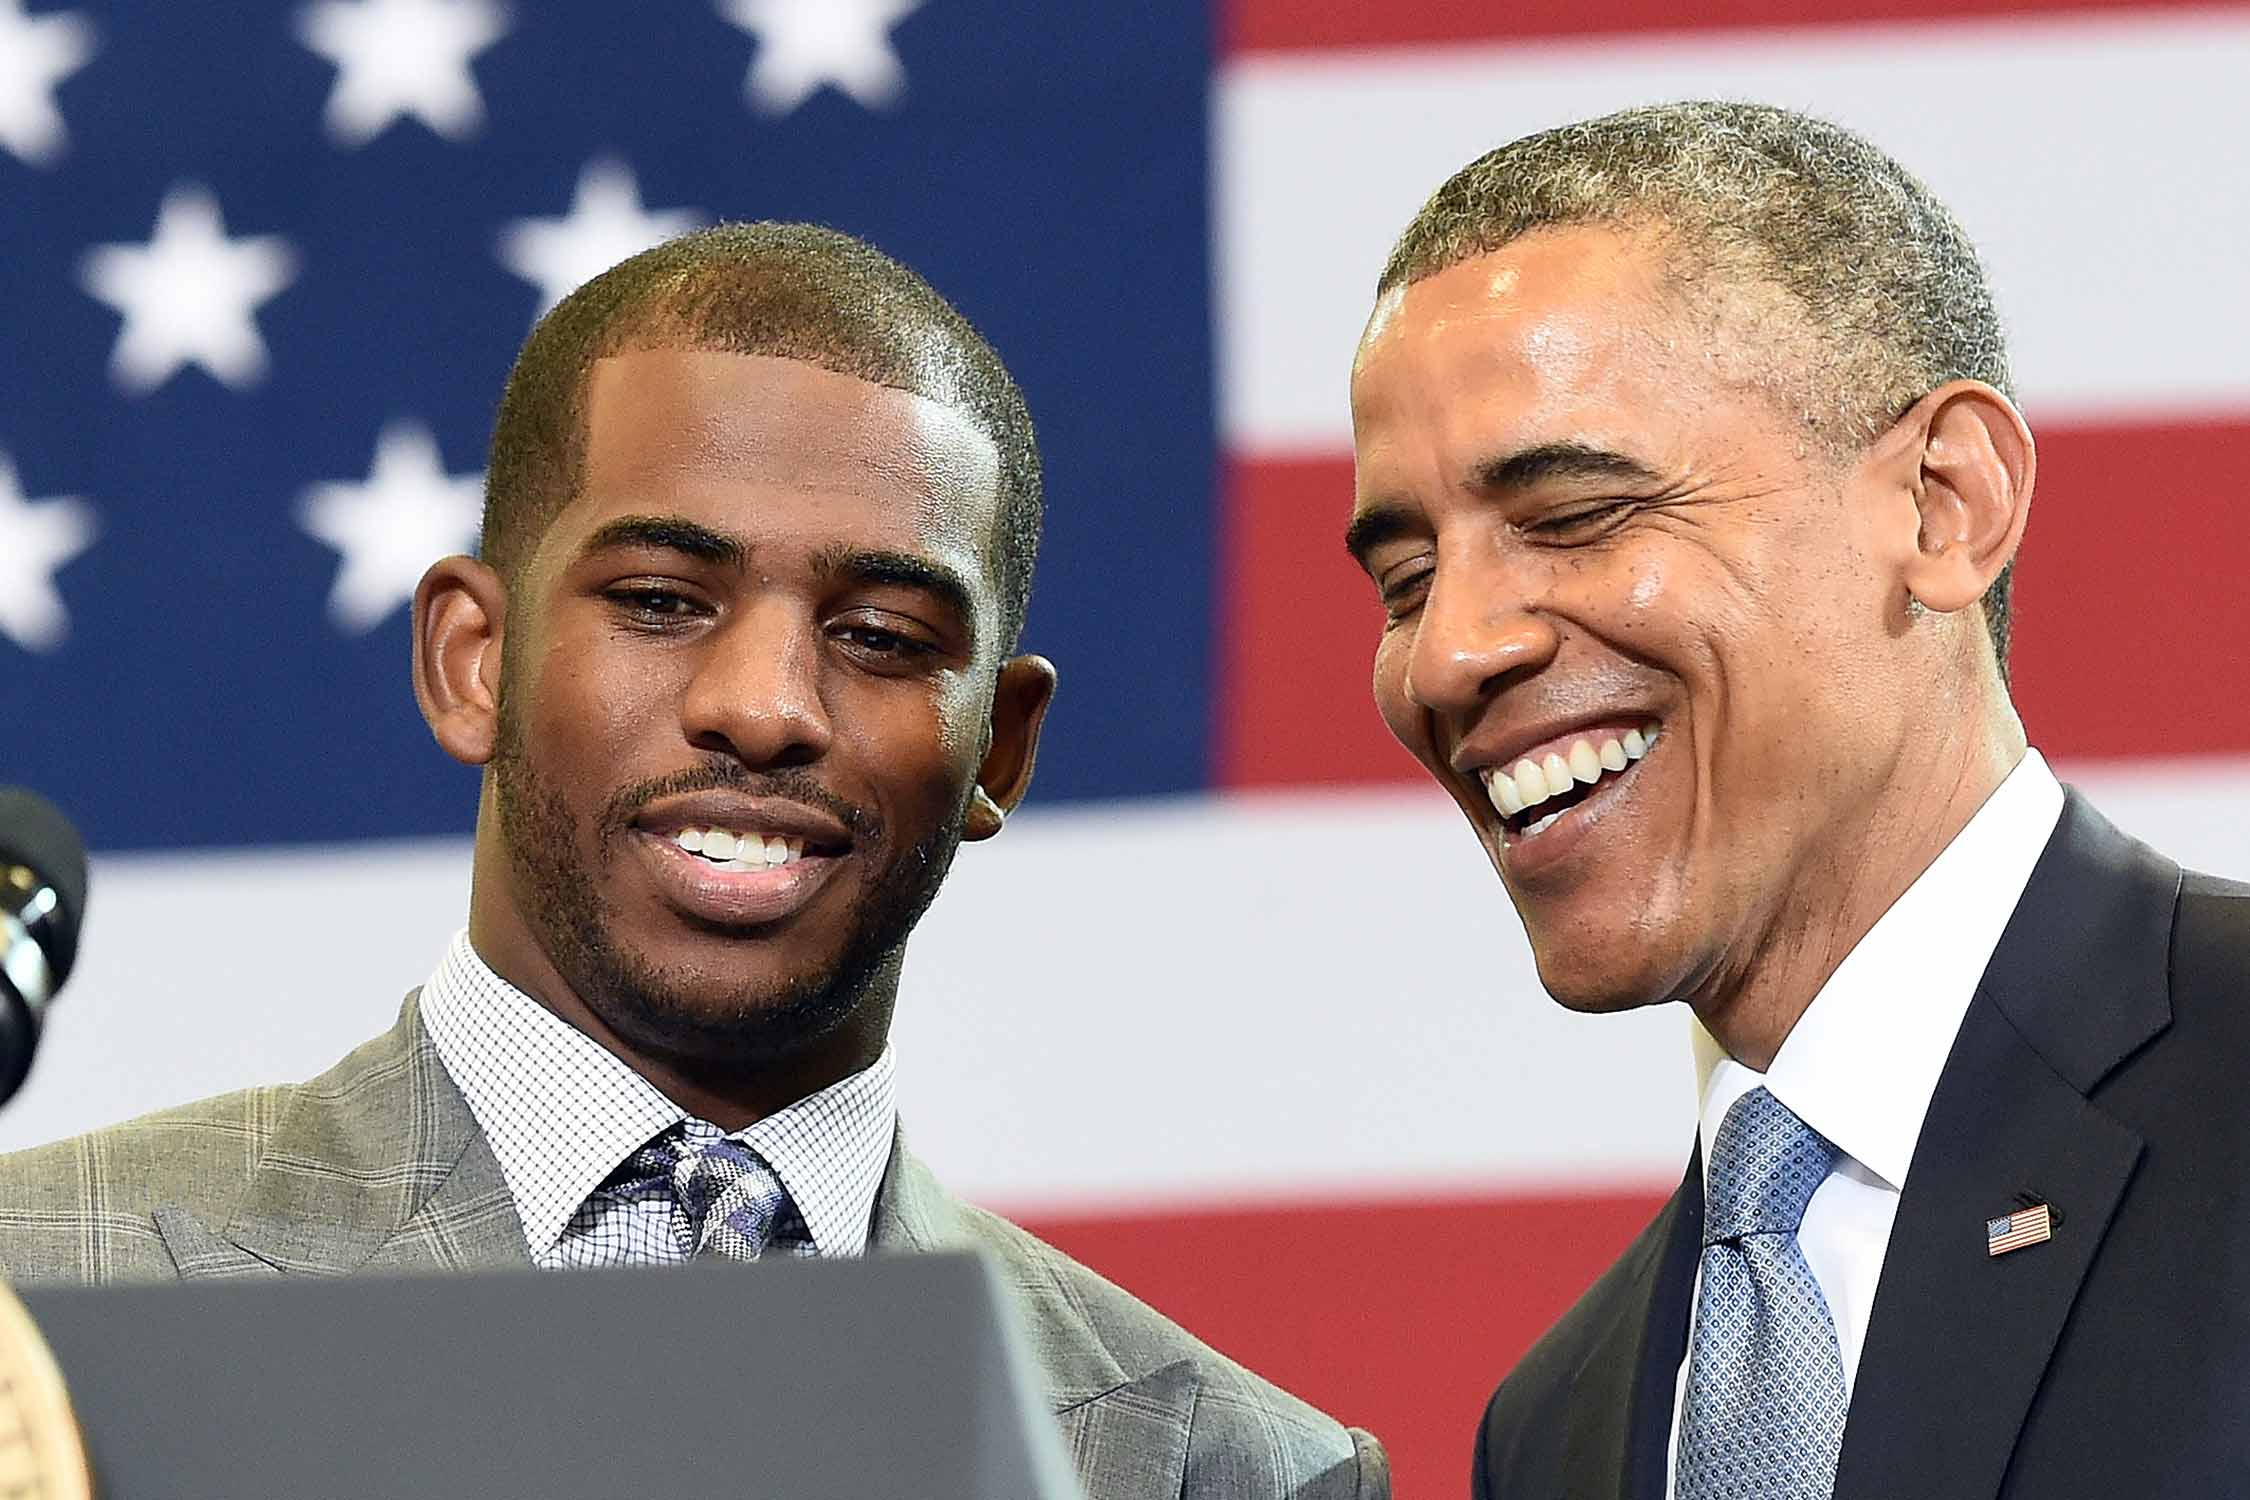 Chris Paul and President Barack Obama chat during a town hall meeting in 2014.